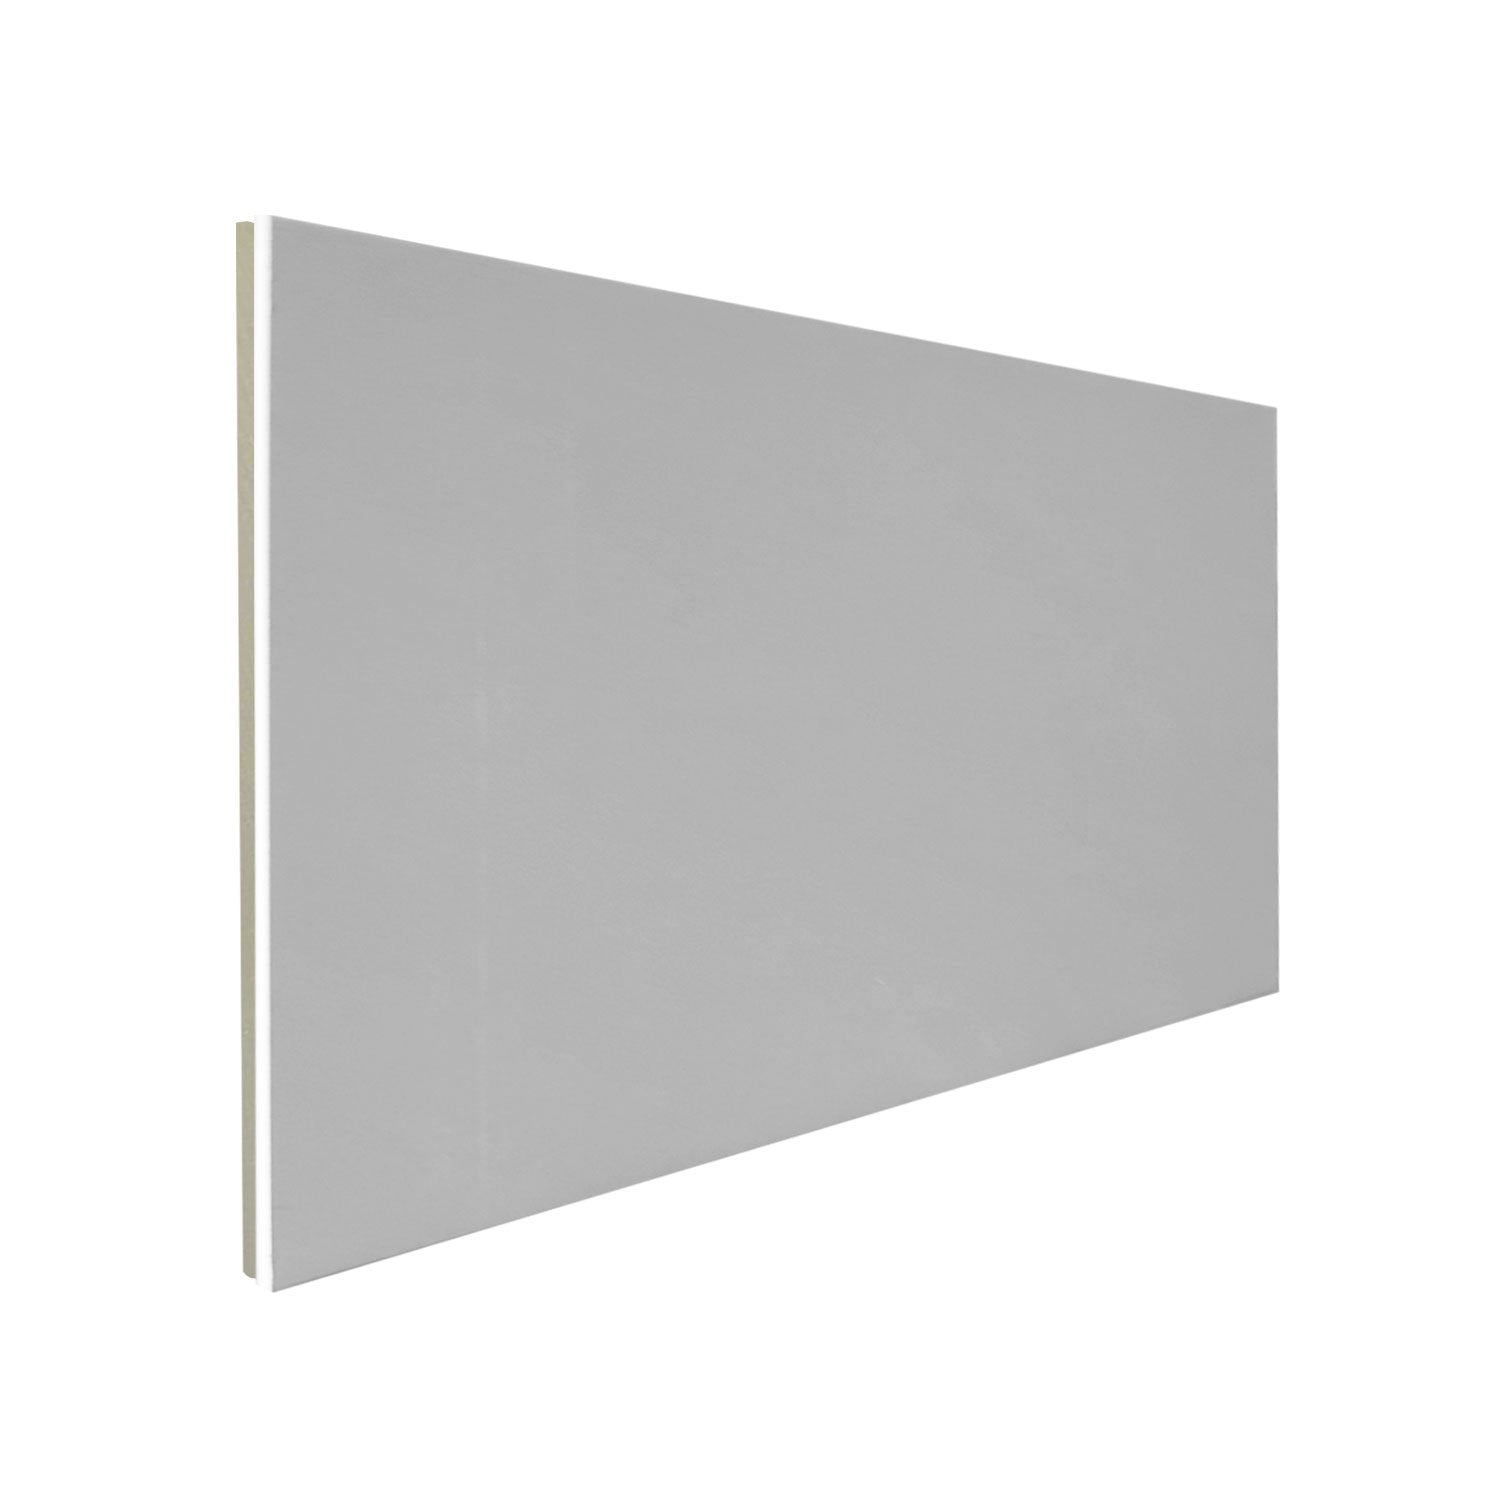 Thermal Check Plasterboard 8' x 4' x 30mm